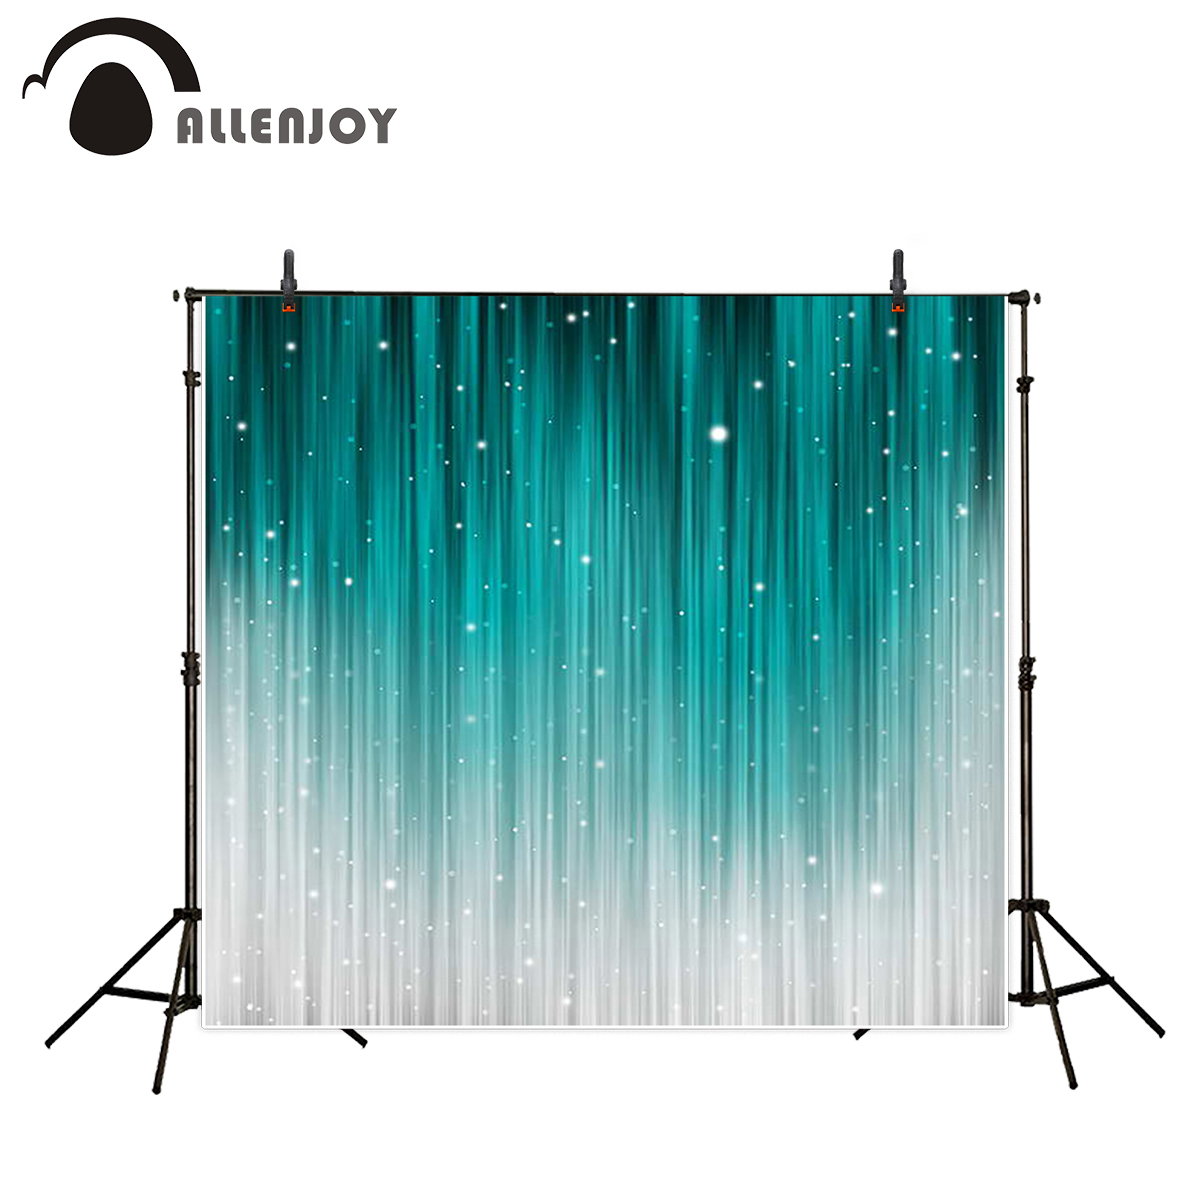 Allenjoy background photography gradient color bokeh green shiny fashion backdrop for photo backdrop fabric newborn allenjoy backdrop spring background green grass light bokeh dots photocall kids baby for photo studio